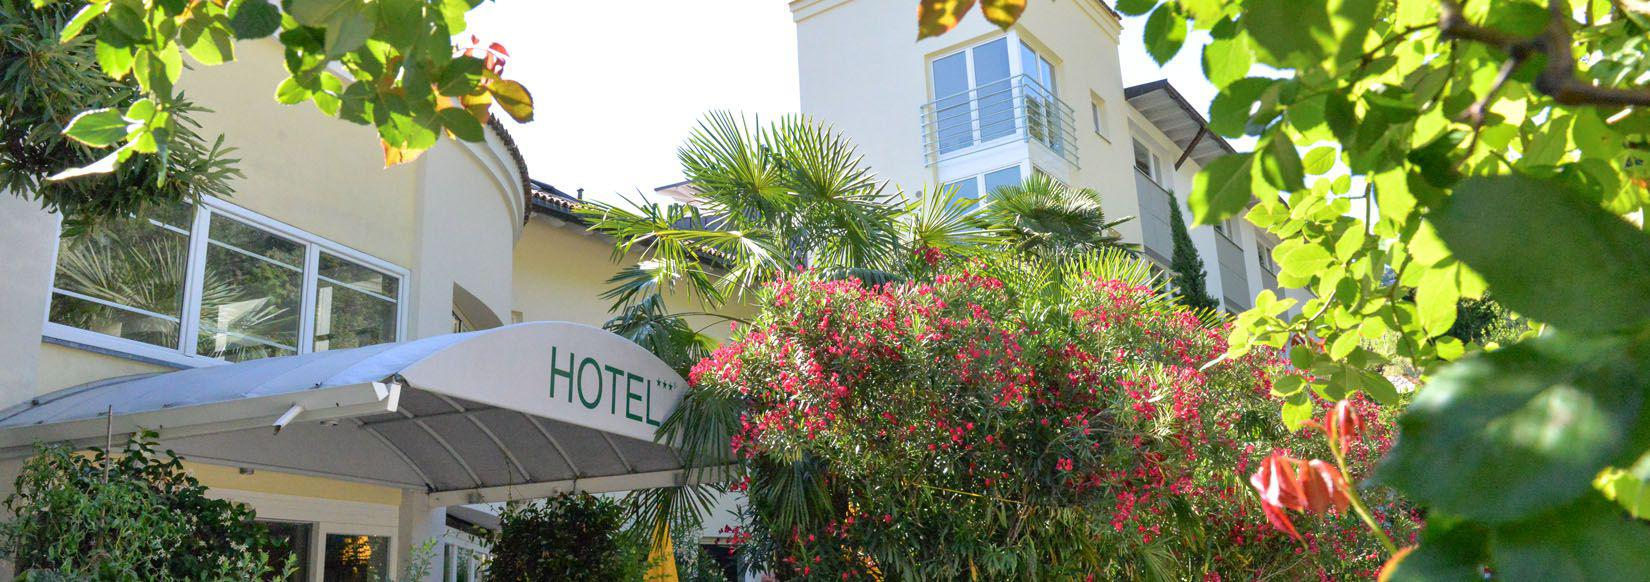 3 star hotel in Lana near Merano